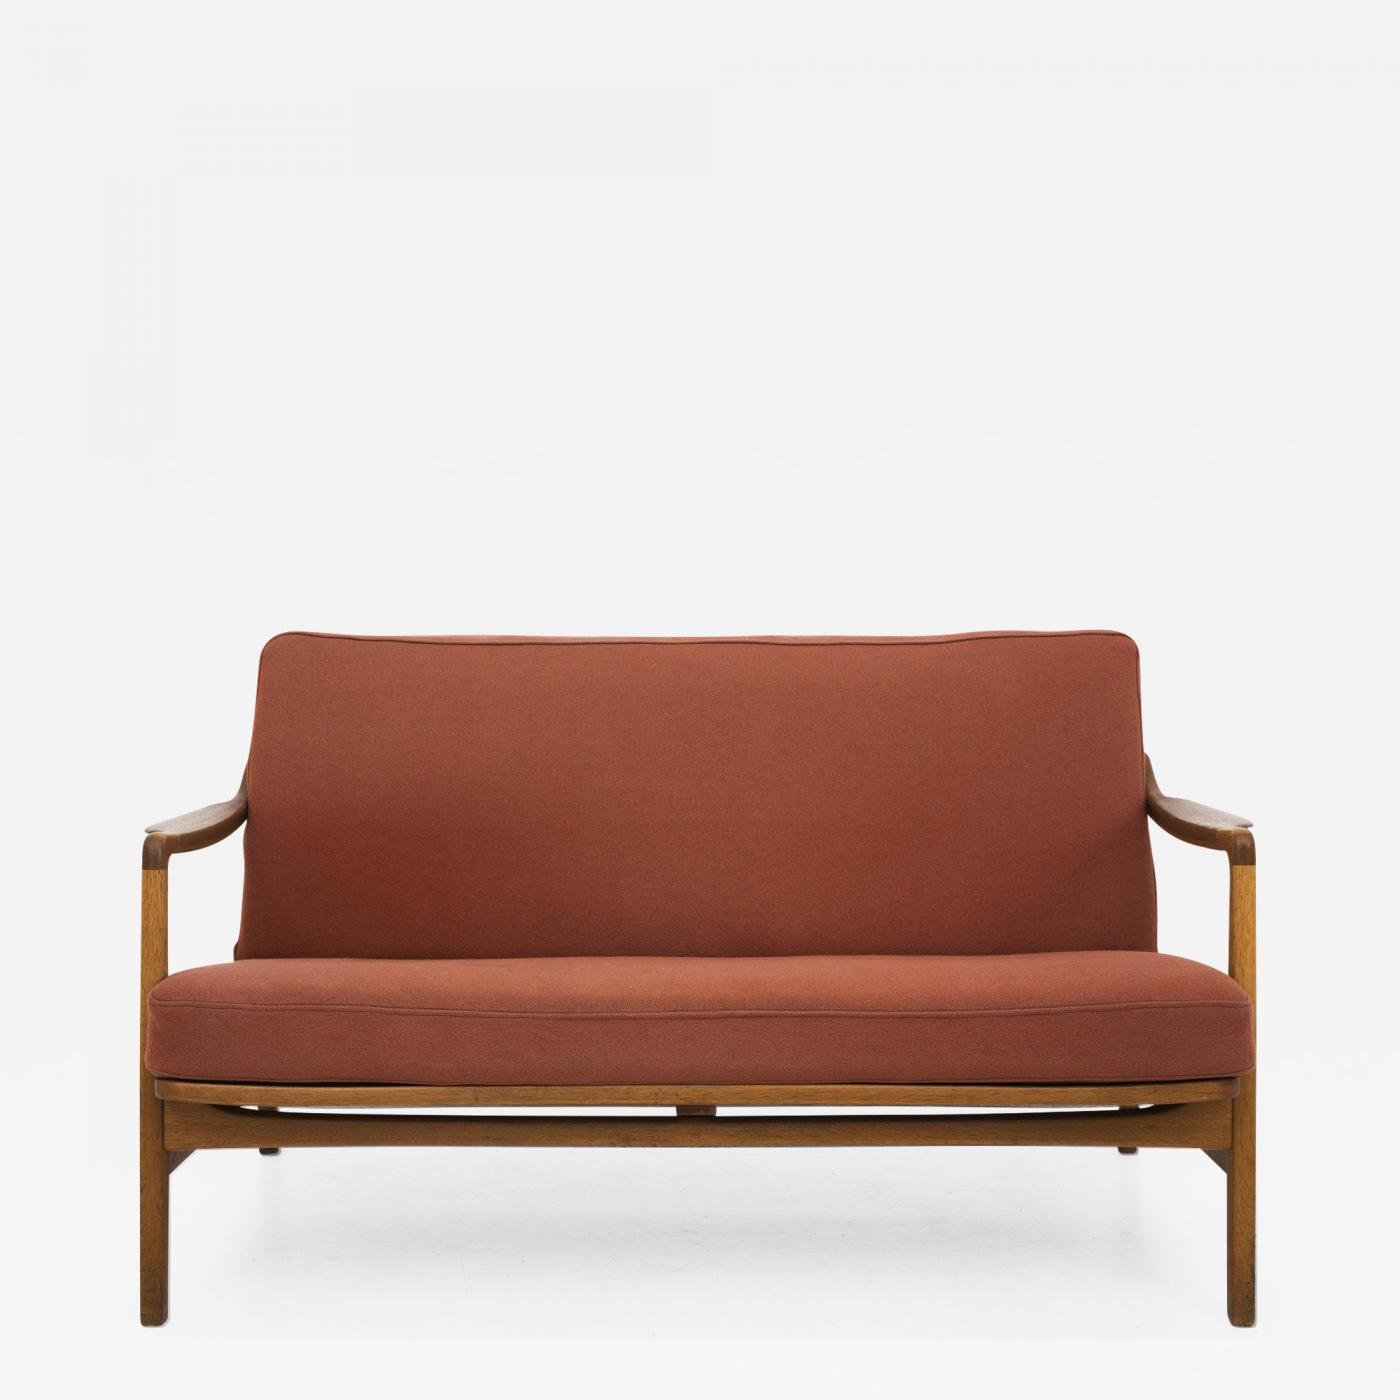 Tove & Edvard Kindt-Larsen - Model 117/2 - Sofa